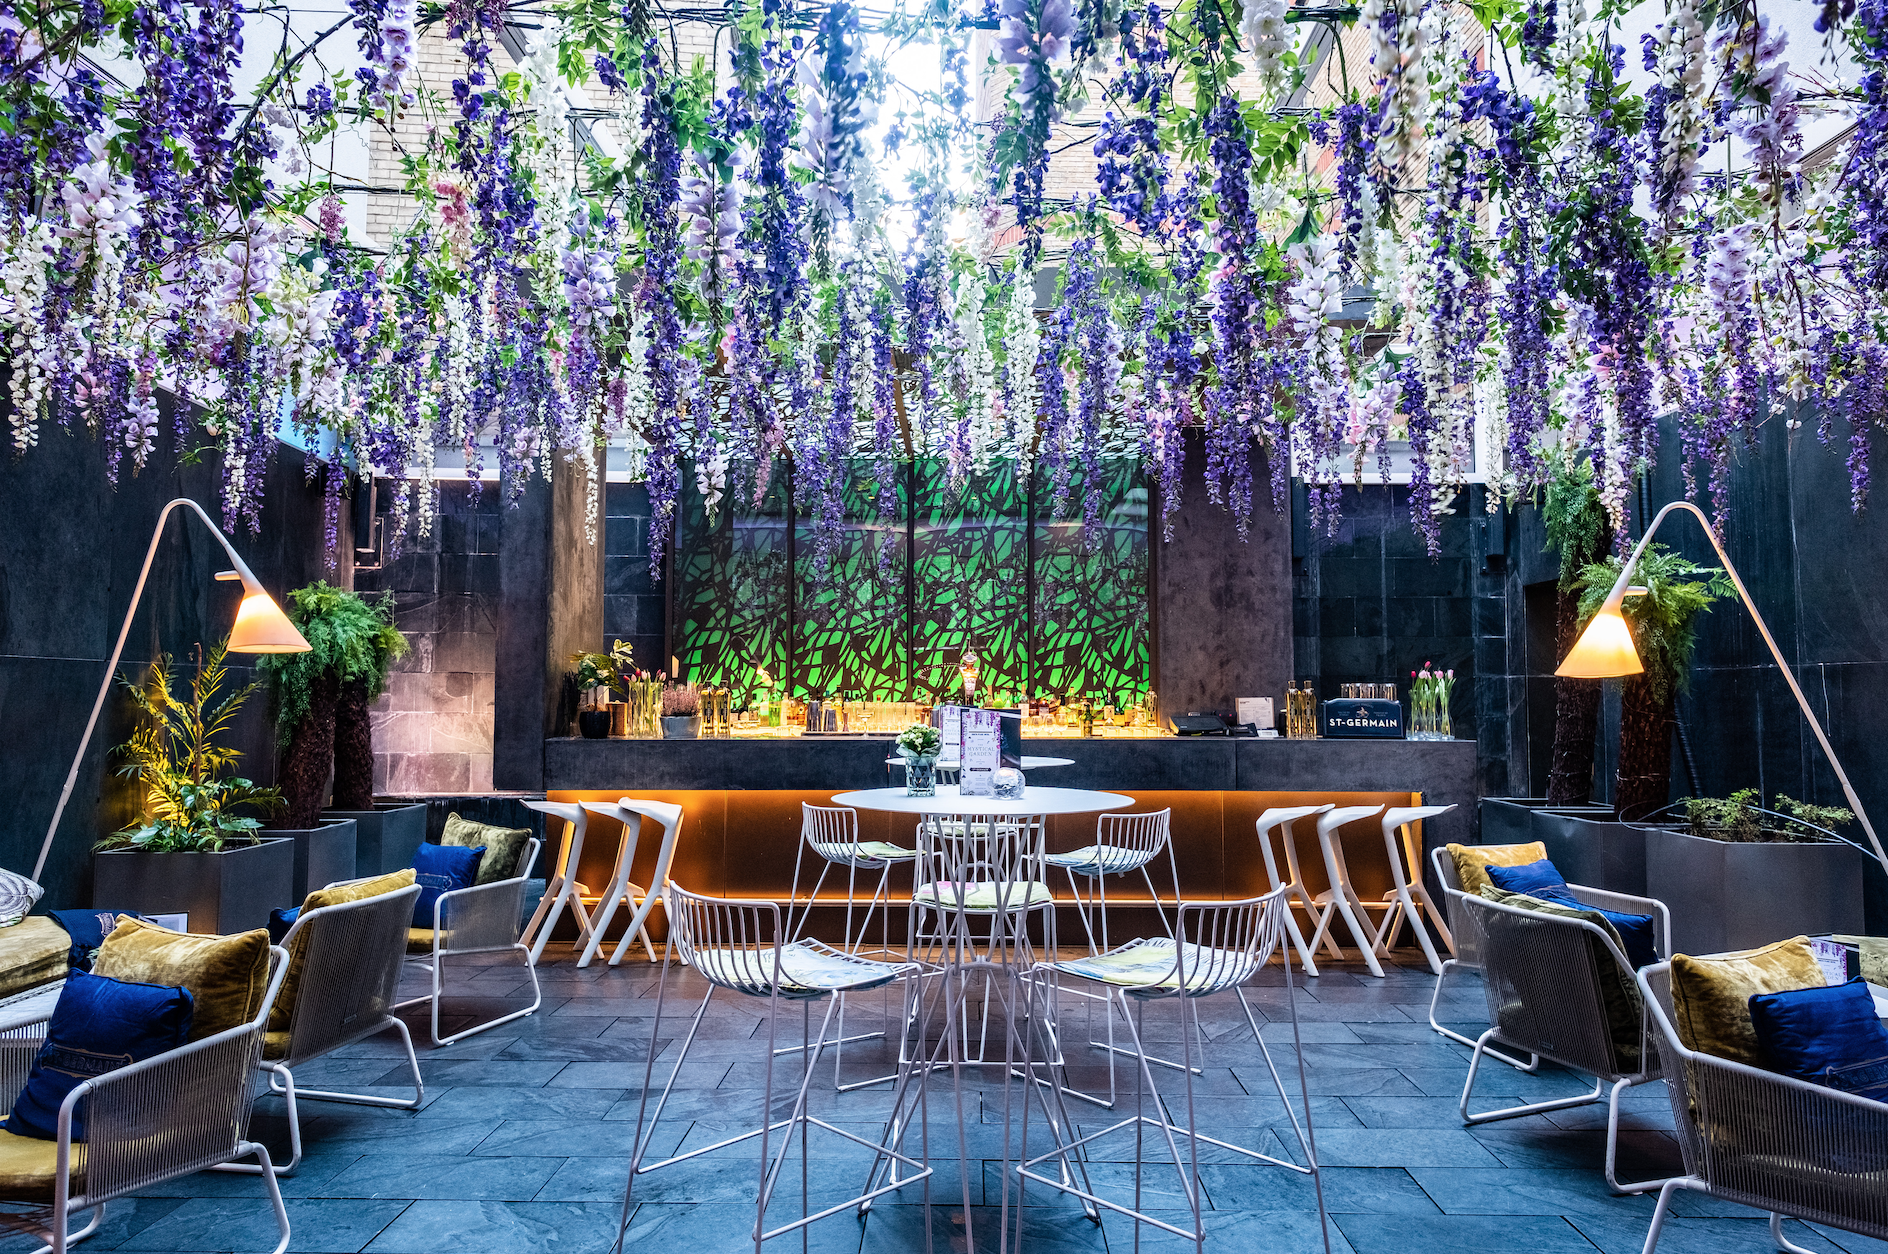 mystical-garden-south-place-hotel-stgermain-london-valentines-day